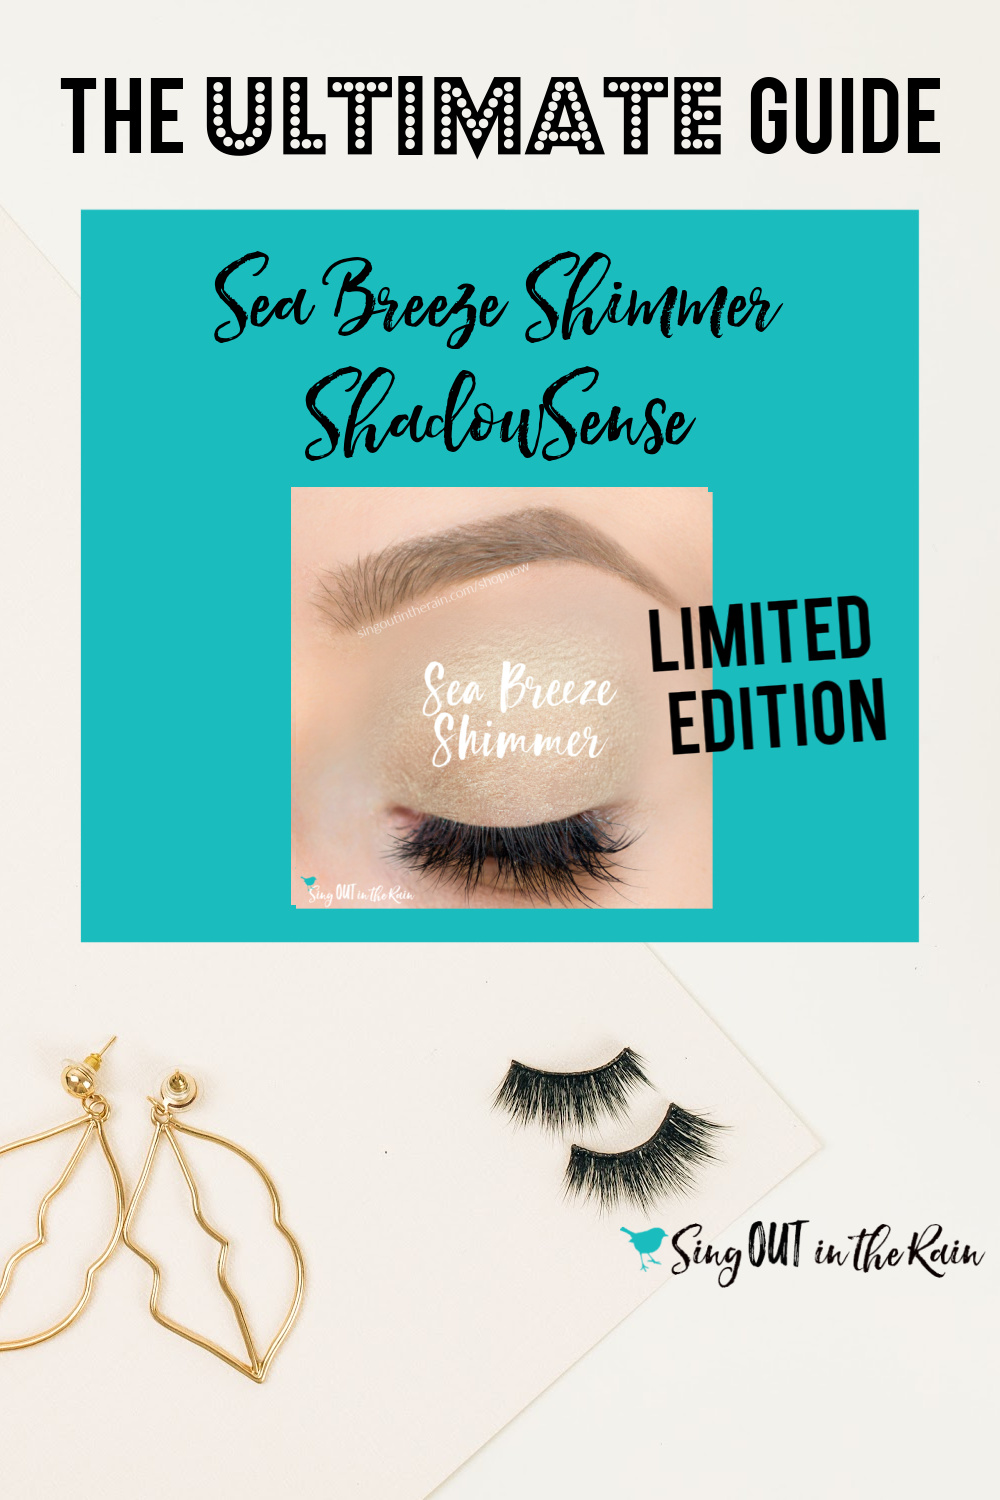 The Ultimate Guide to Sea Breeze Shimmer ShadowSense